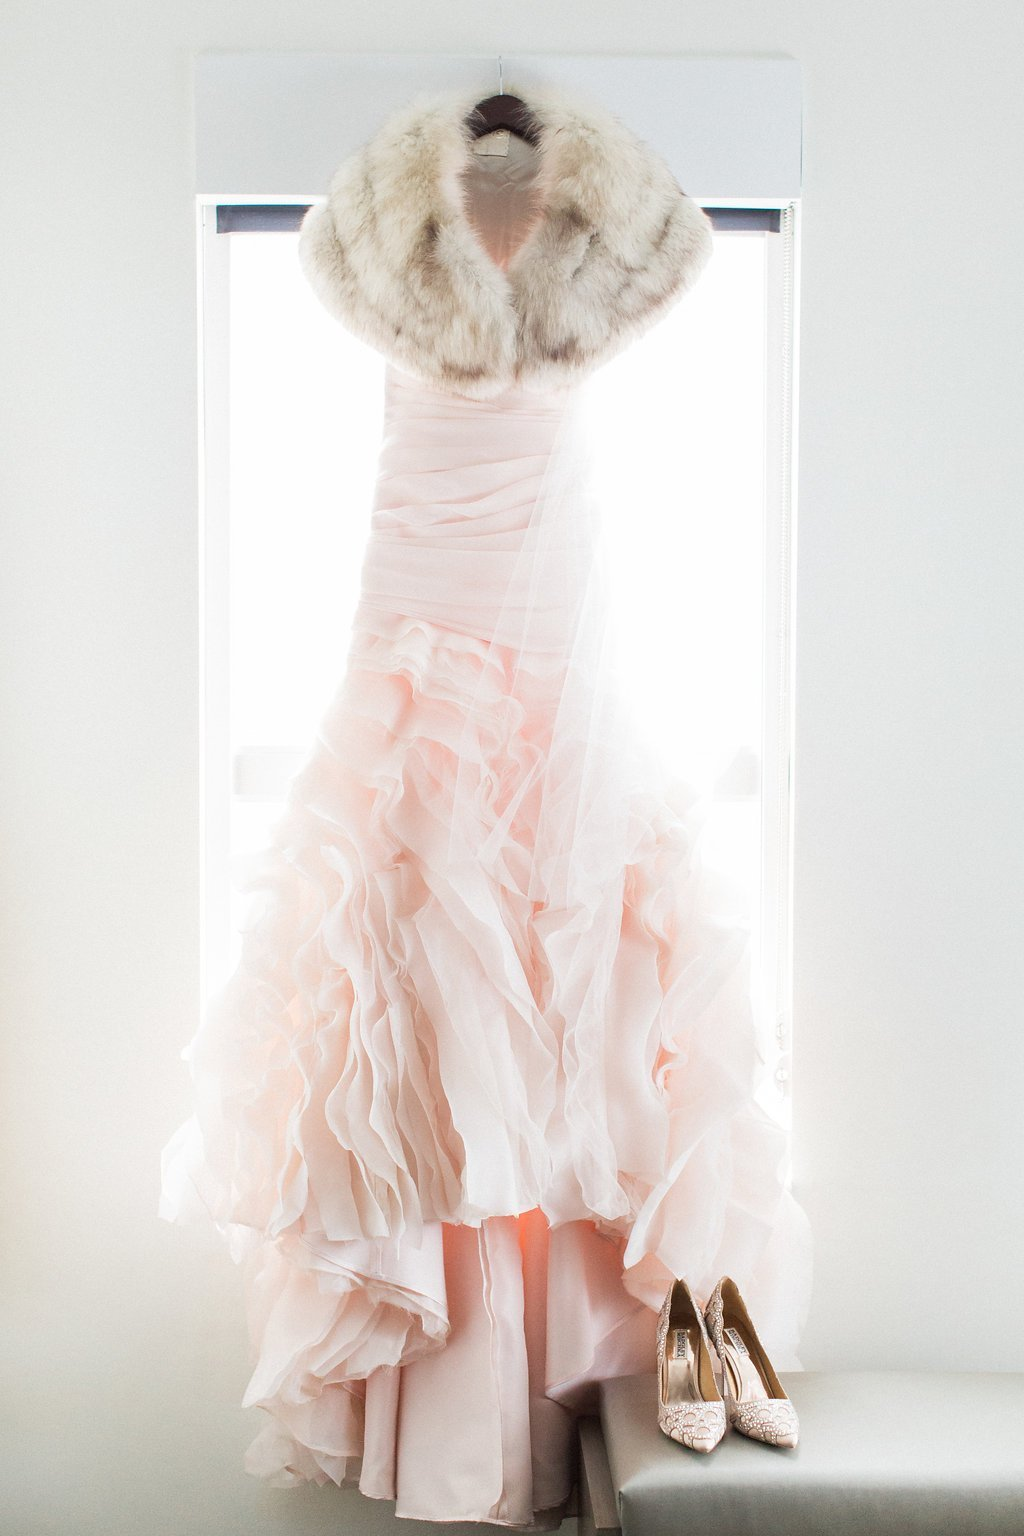 Photograph of blush pink wedding dress hanging in hotel room with fur shawl and badgley mischka bridal shoes - J Verno Studios Winter Wedding